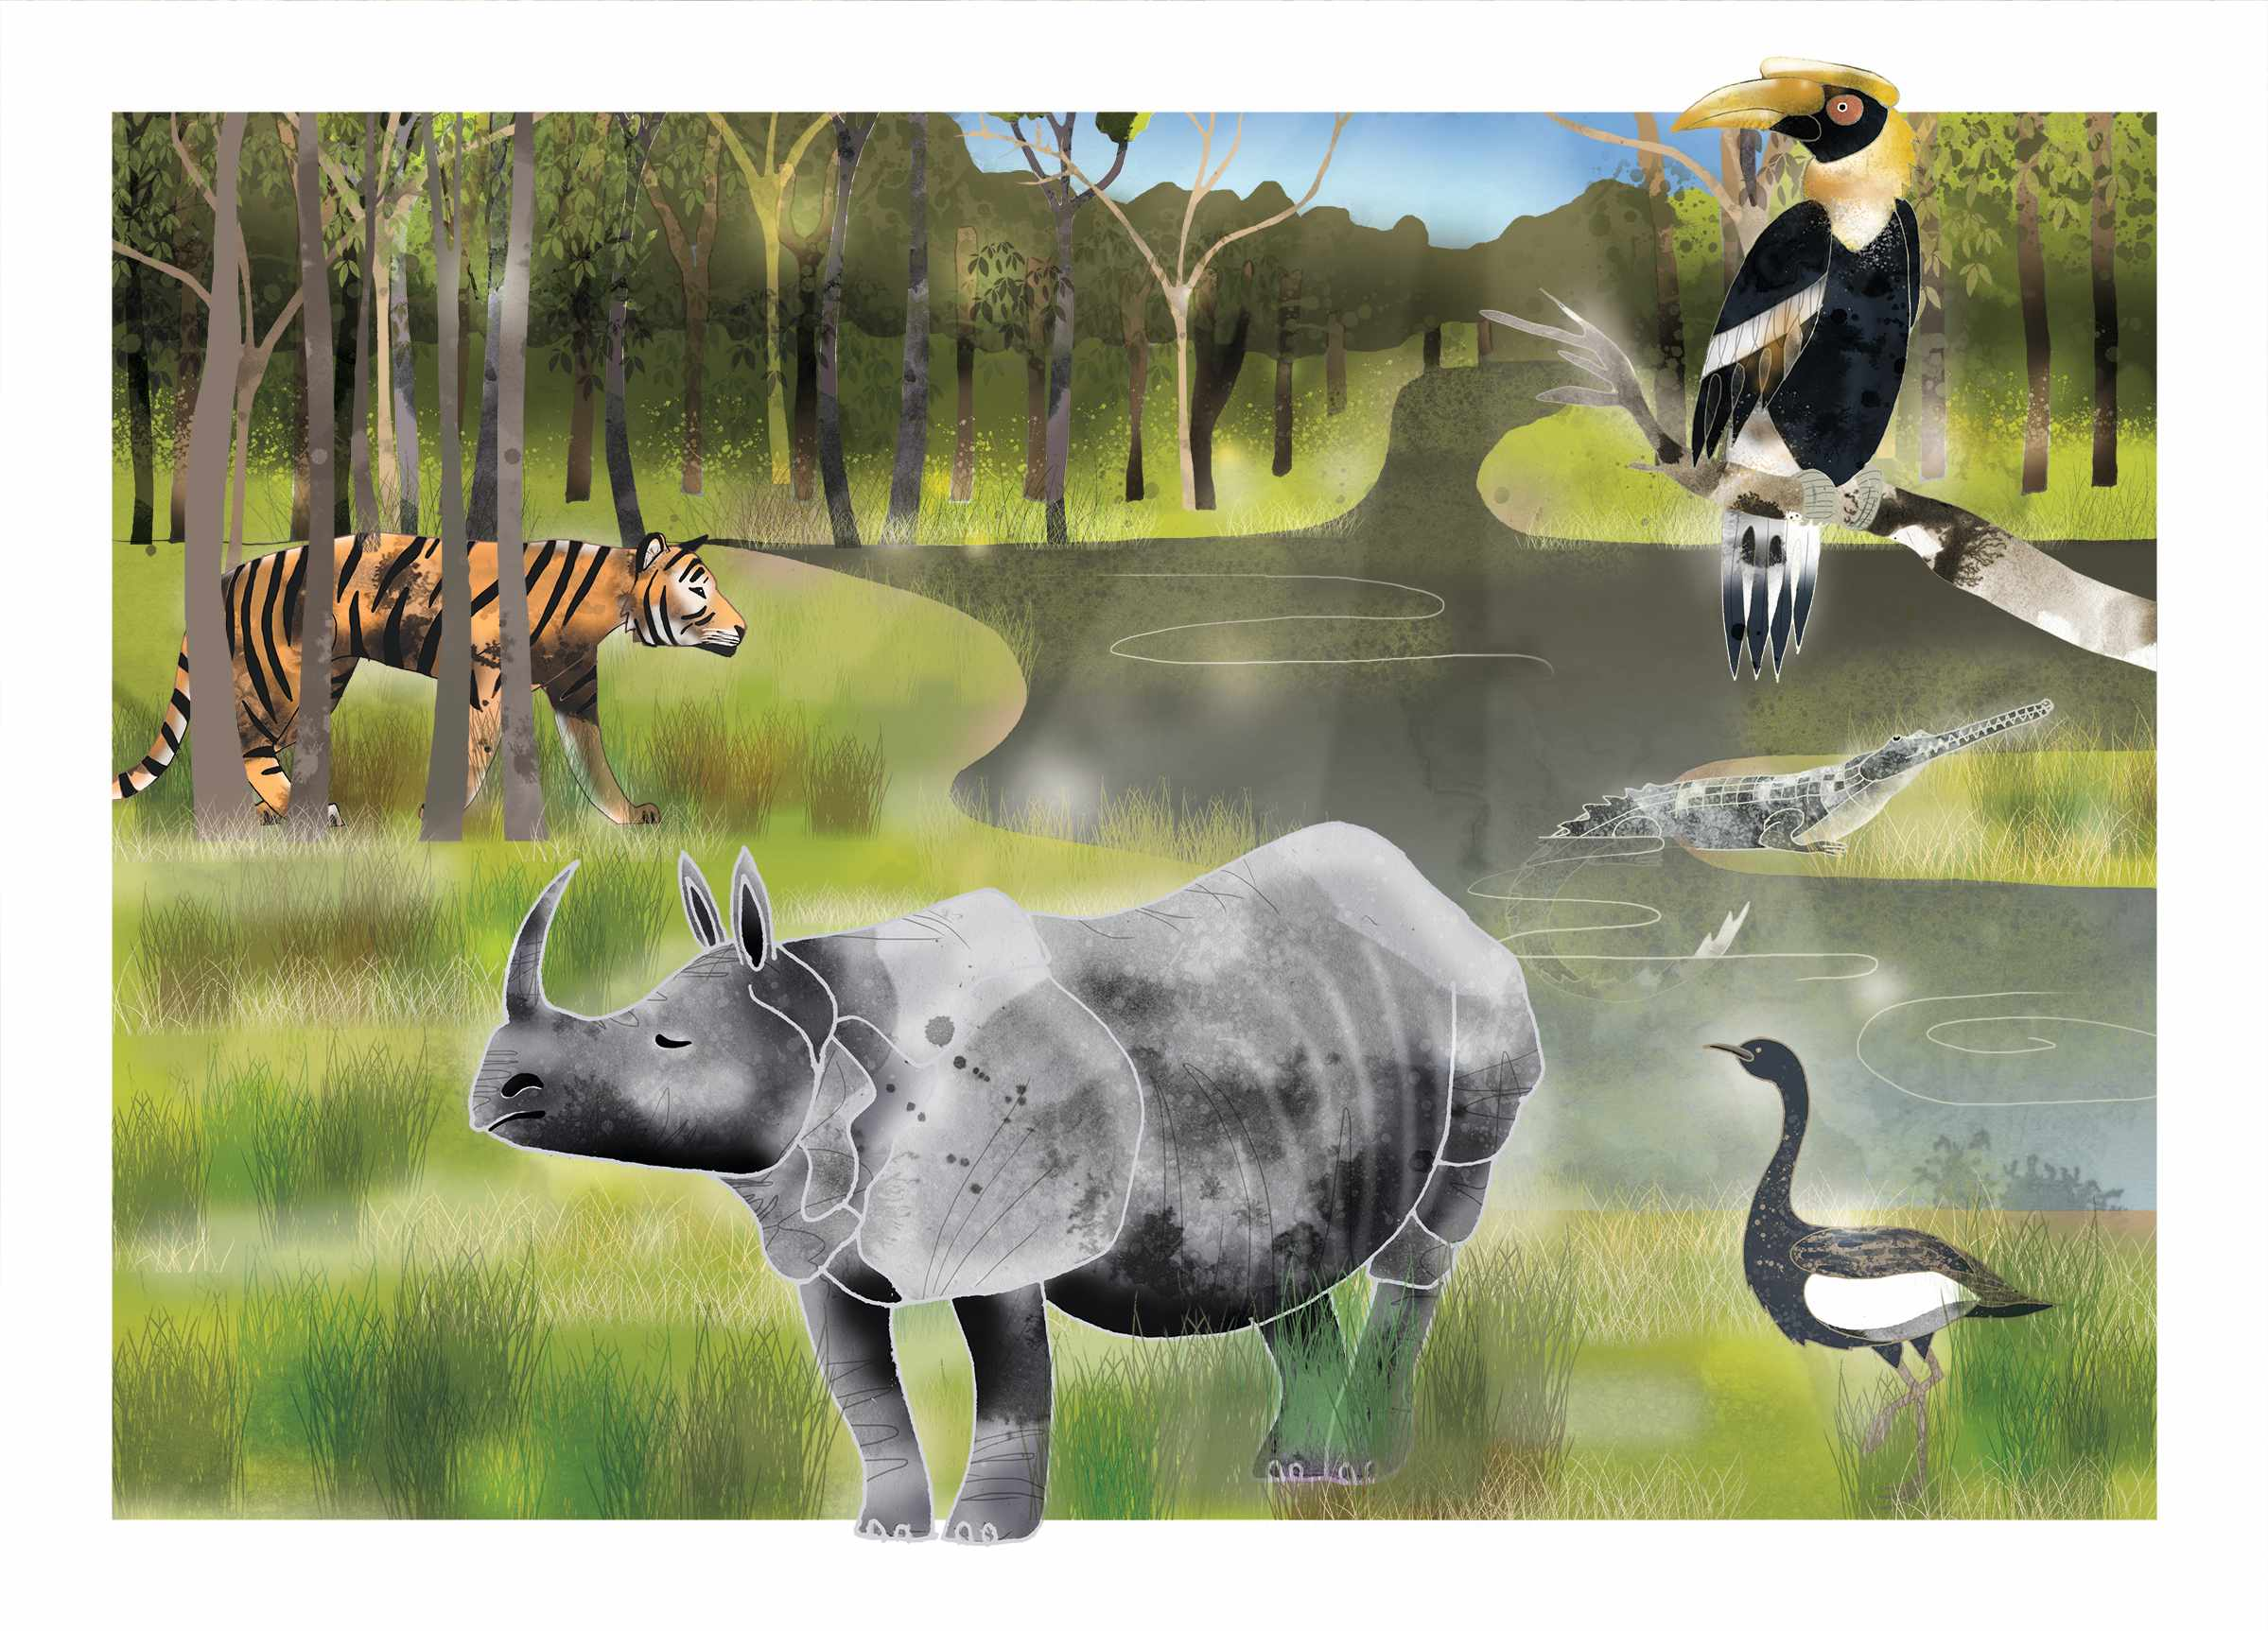 Chitwan_Illustration_Final_Flat_CMYK